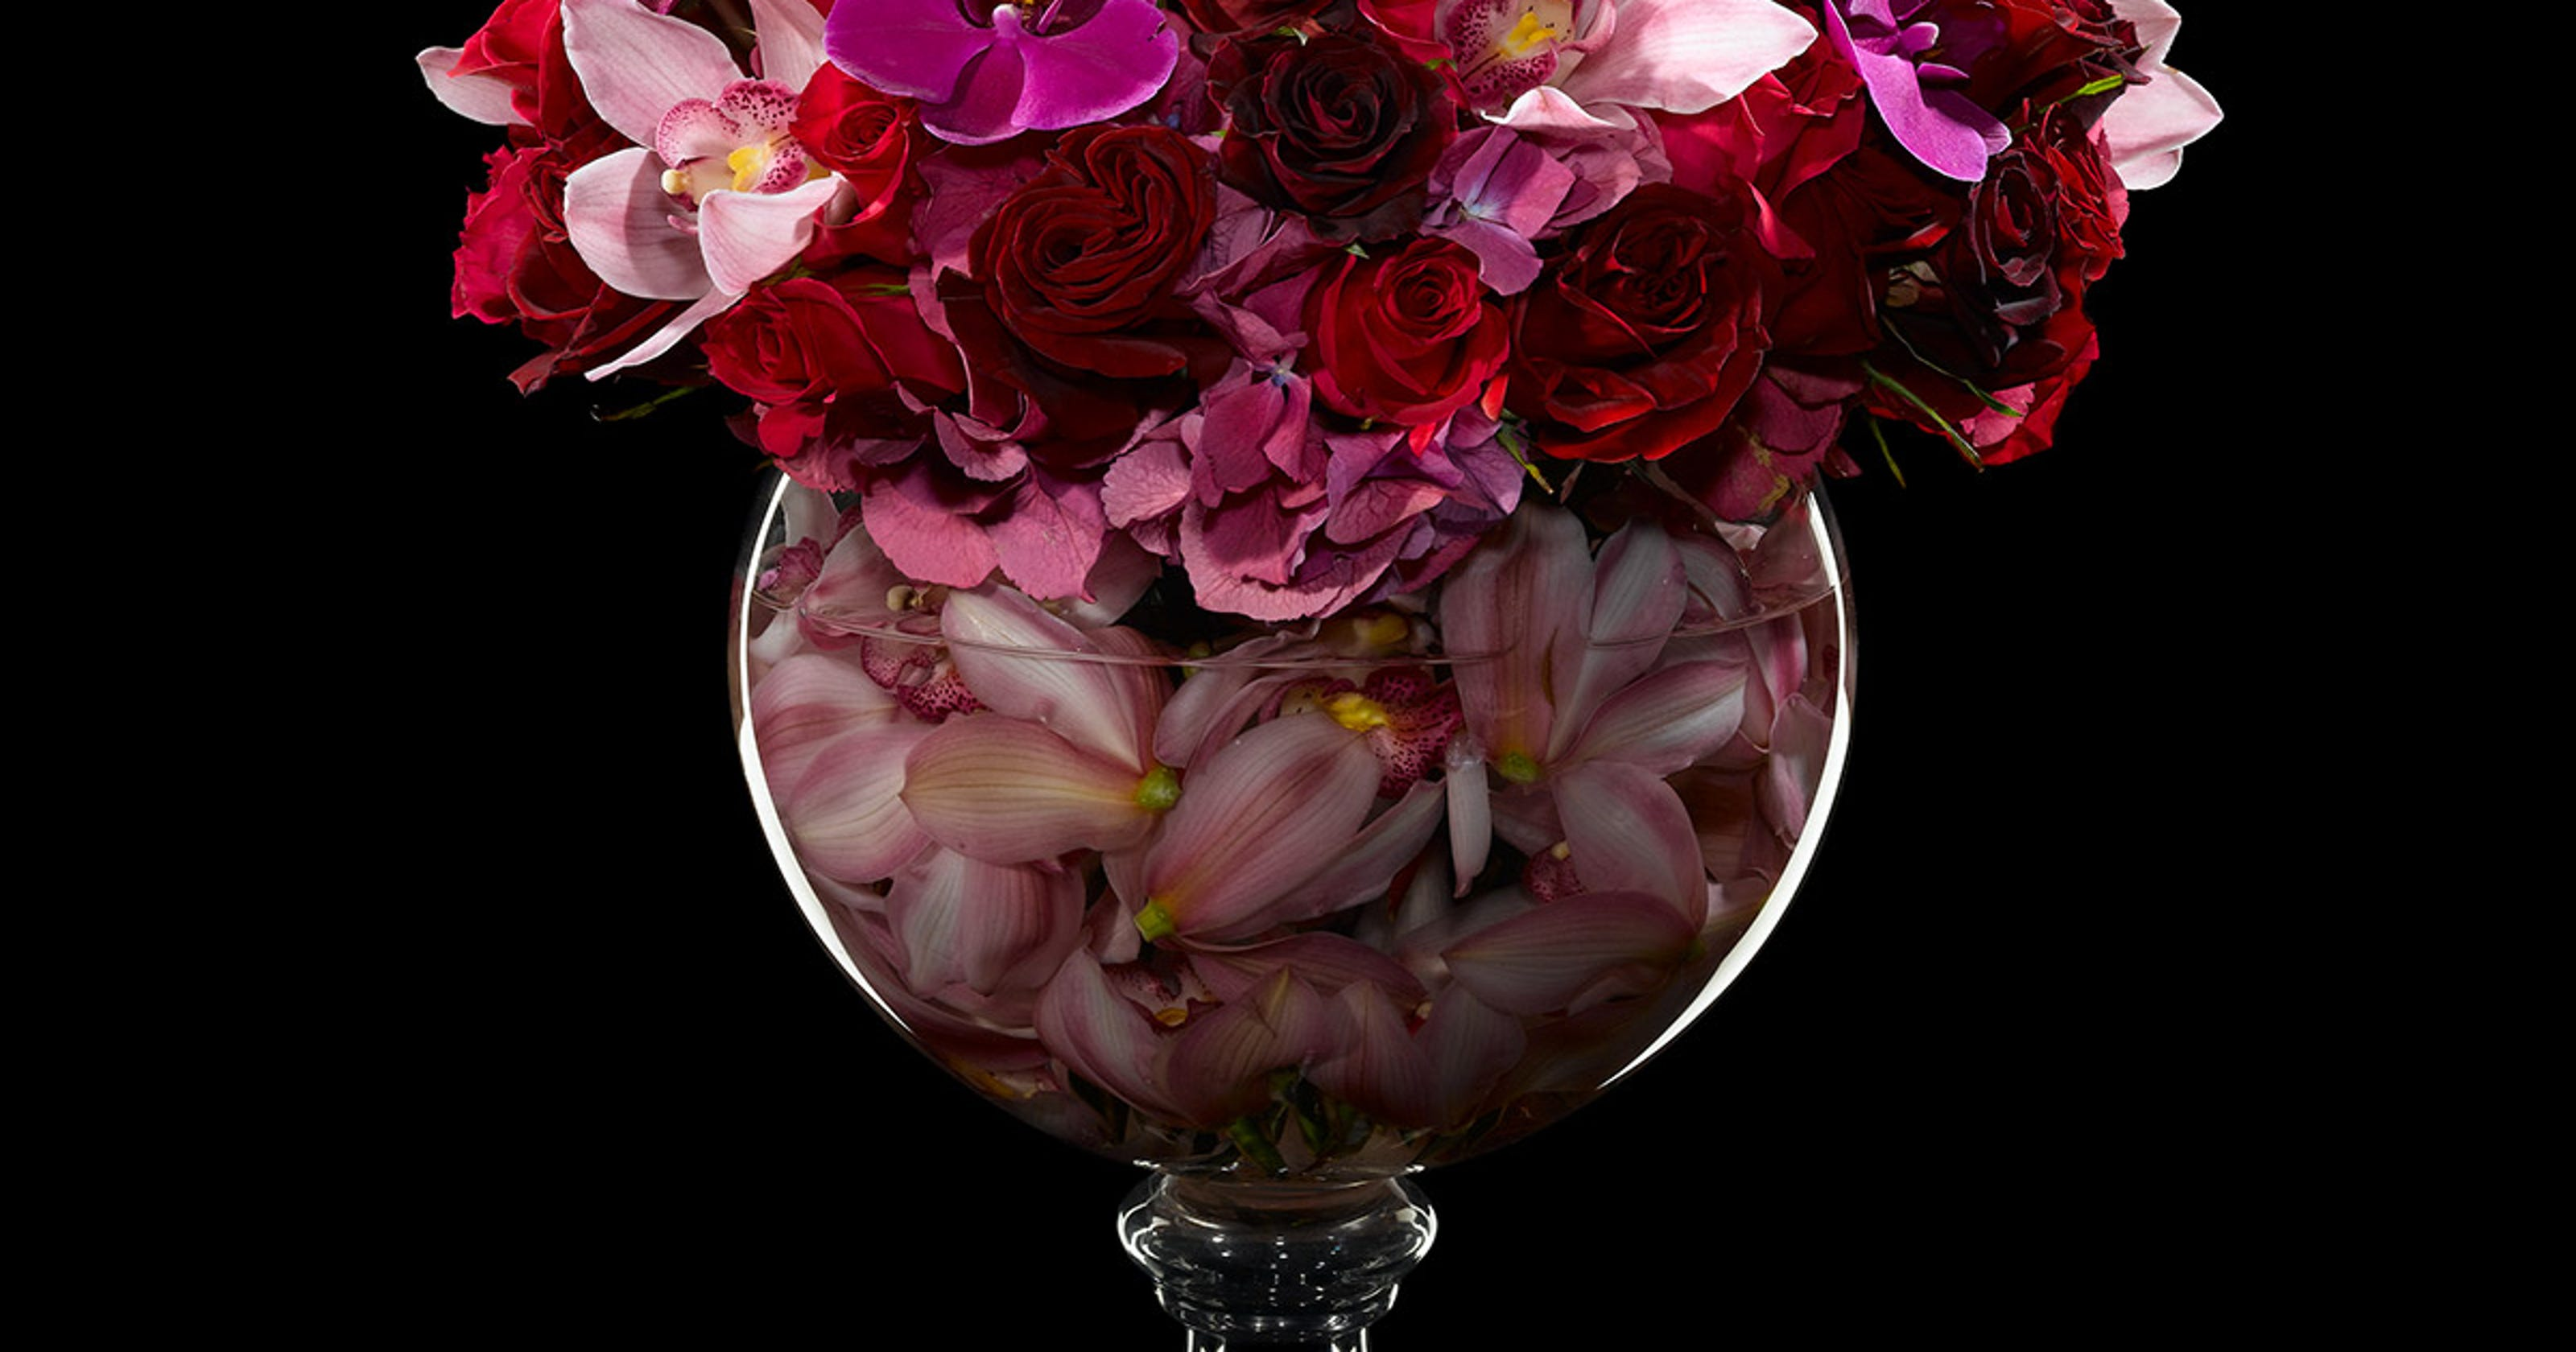 Mothers Day Gifts Megan Markle Inspired Peonies Carnations Comeback